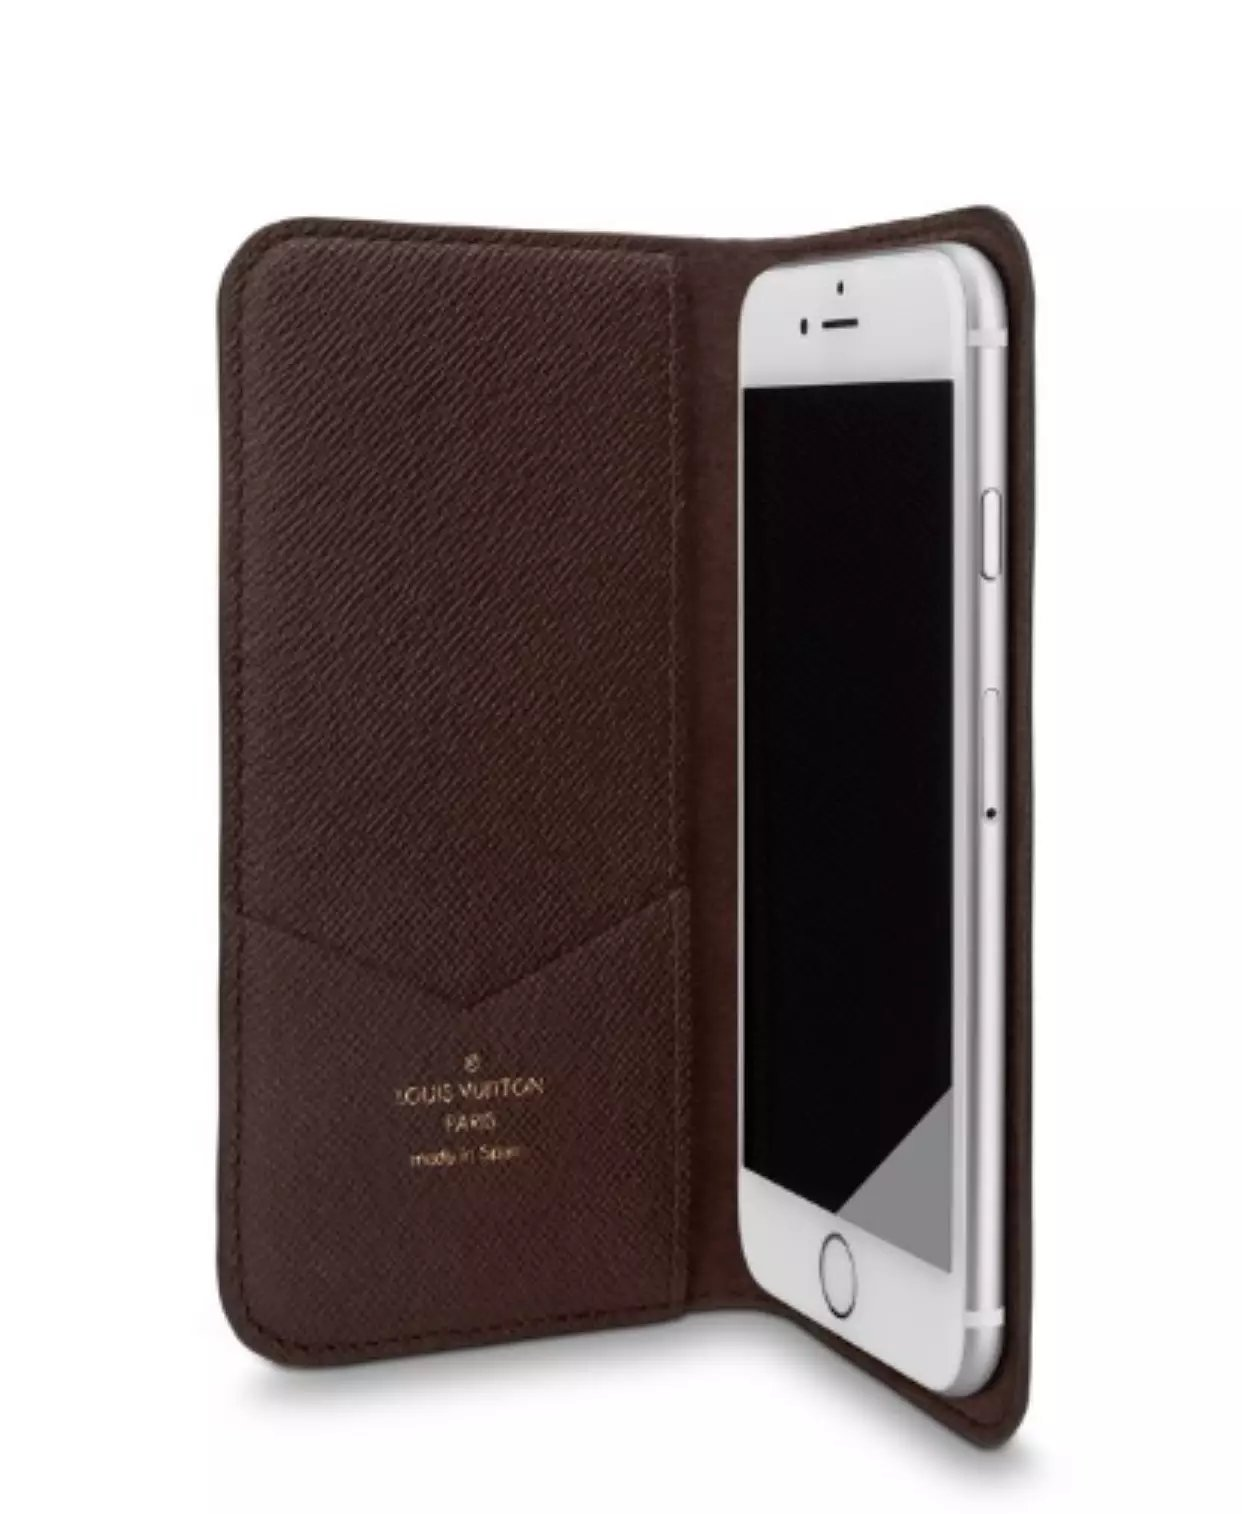 handy hülle iphone filzhülle iphone Louis Vuitton iphone 8 hüllen iphone 8 flip tasche handyhüllen 8lbst erstellen iphone cover 8 iphone 8 neuigkeiten iphone ca8 design apple iphone 8 hülle